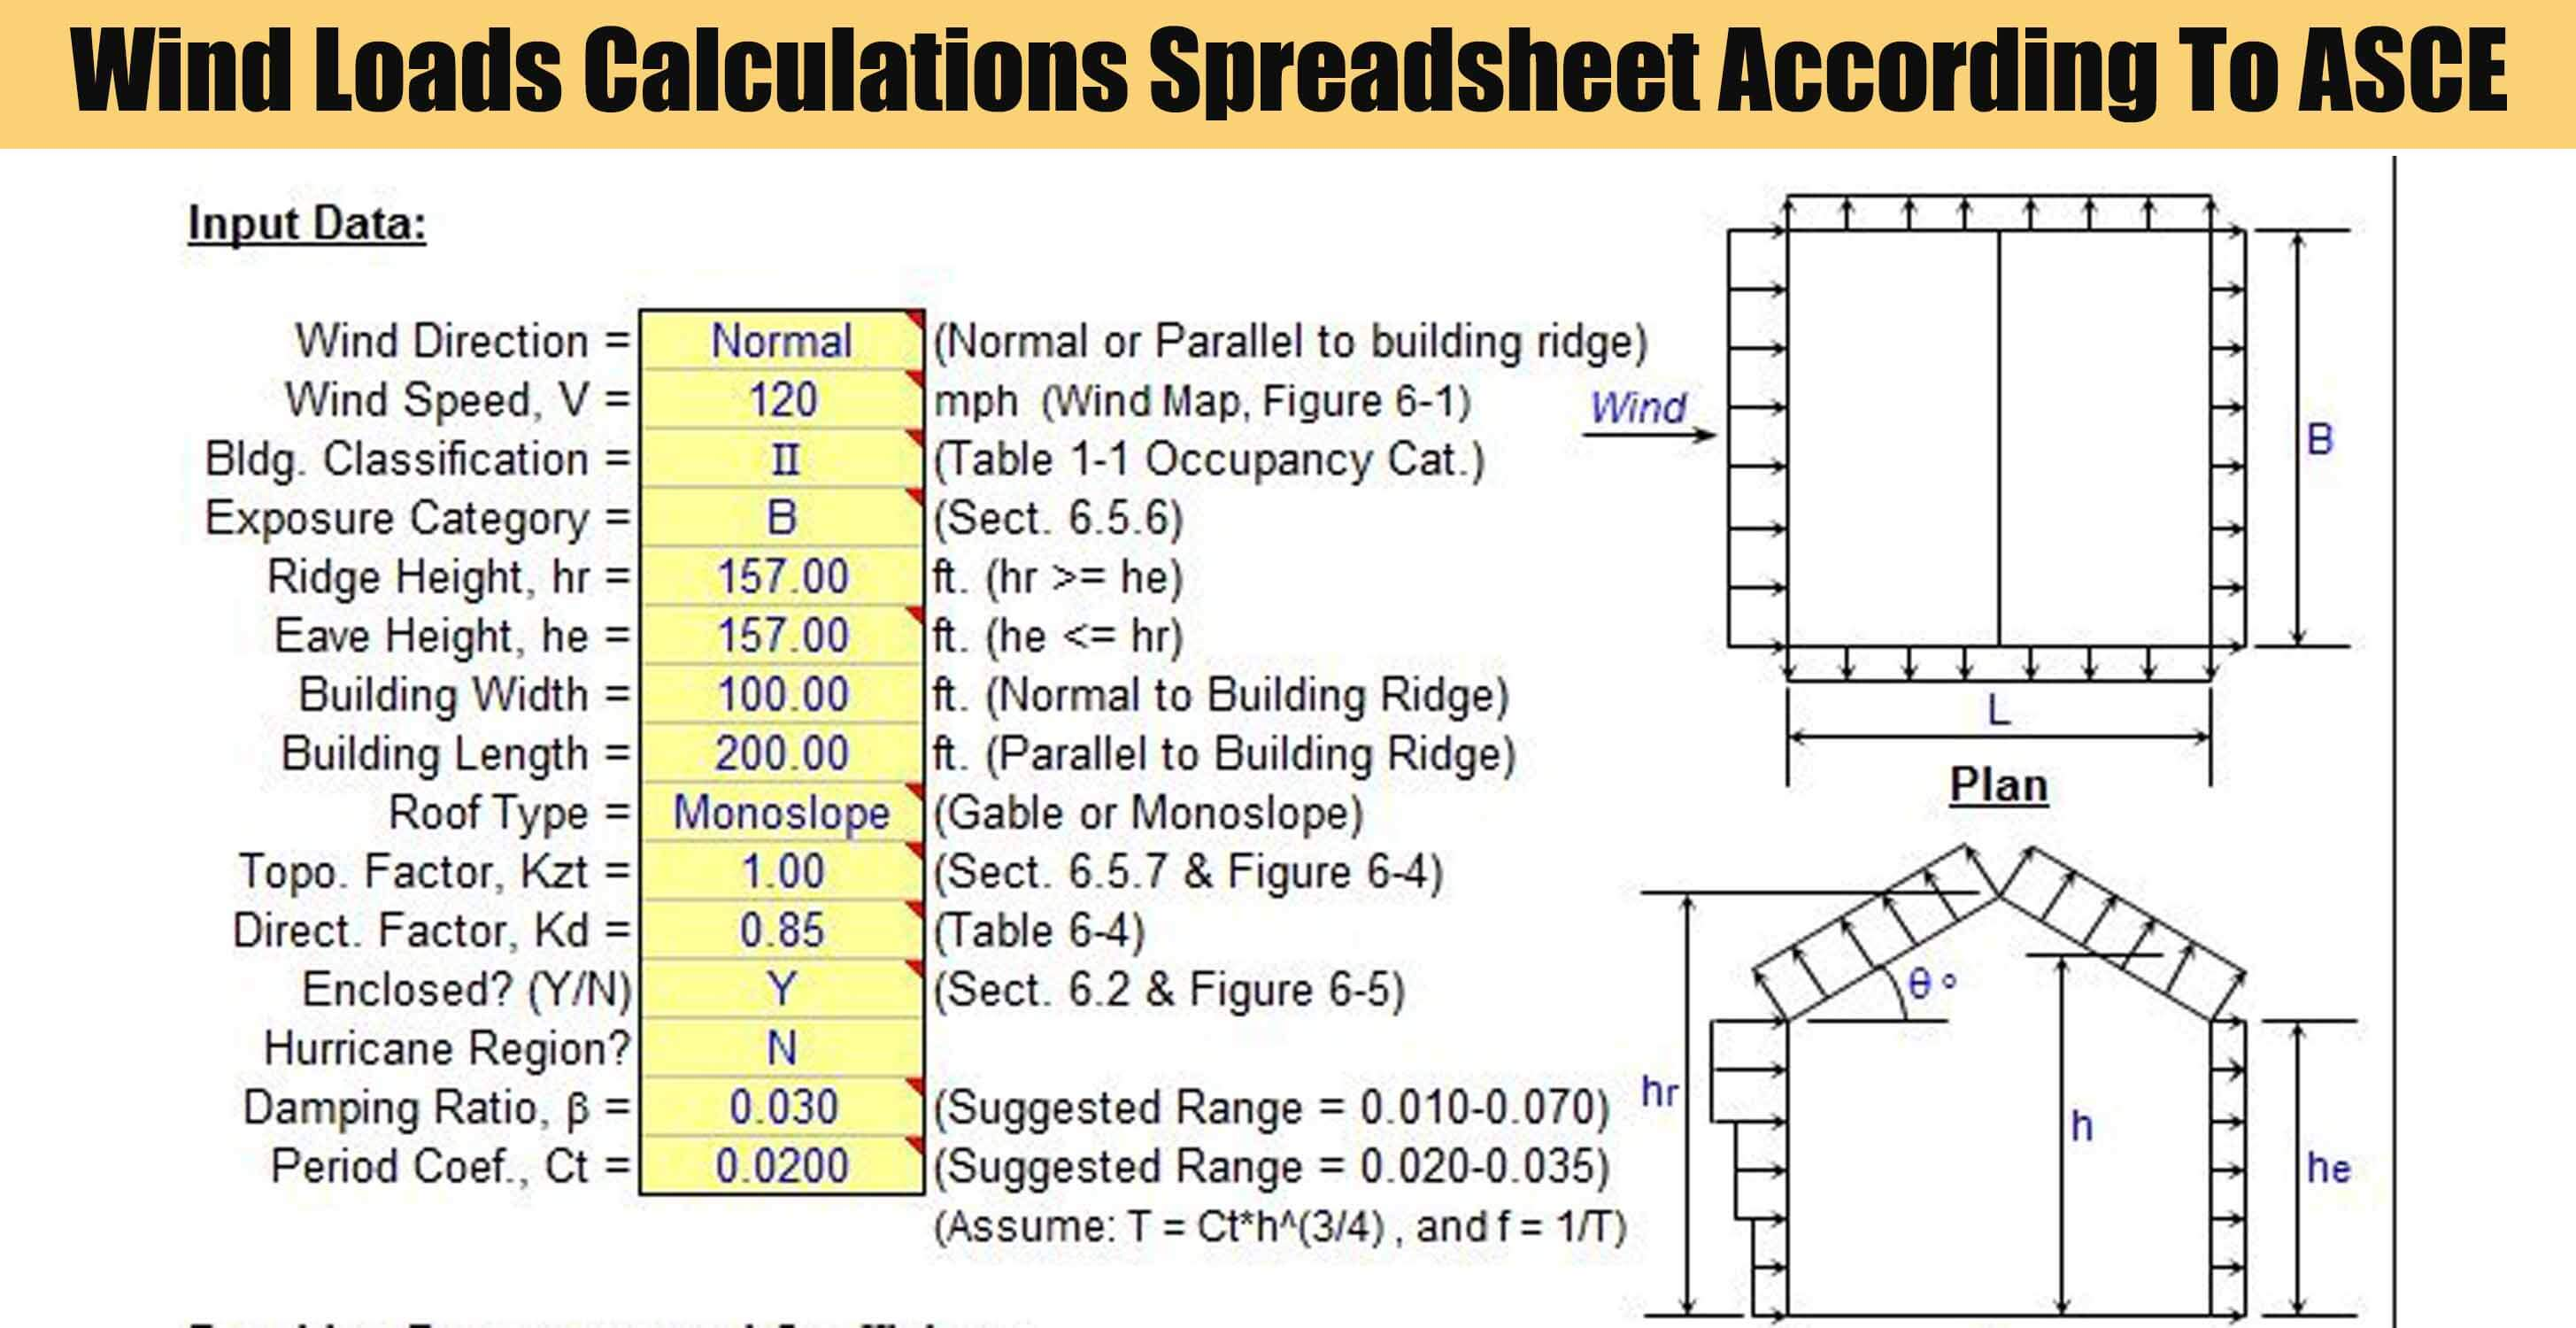 Wind Loads Calculations Spreadsheet According To ASCE - Engineering